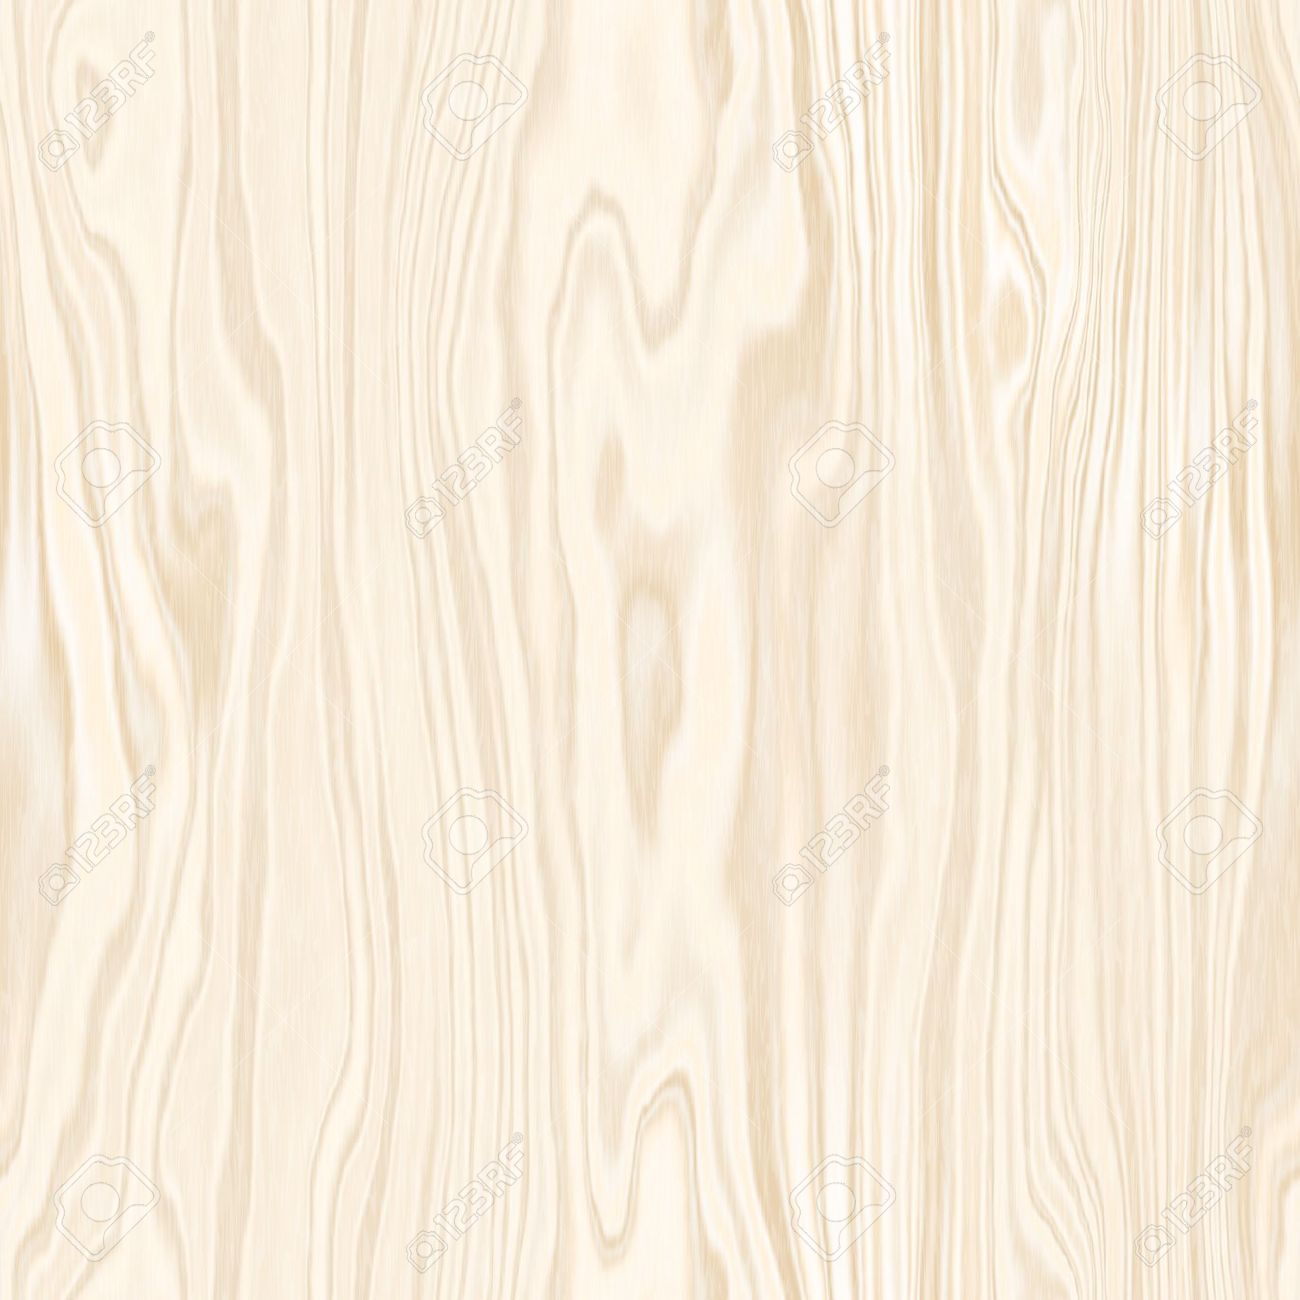 Light wood texture - A Modern Style Of Light Colored Wood Grain Texture That Tiles Seamlessly As A Pattern